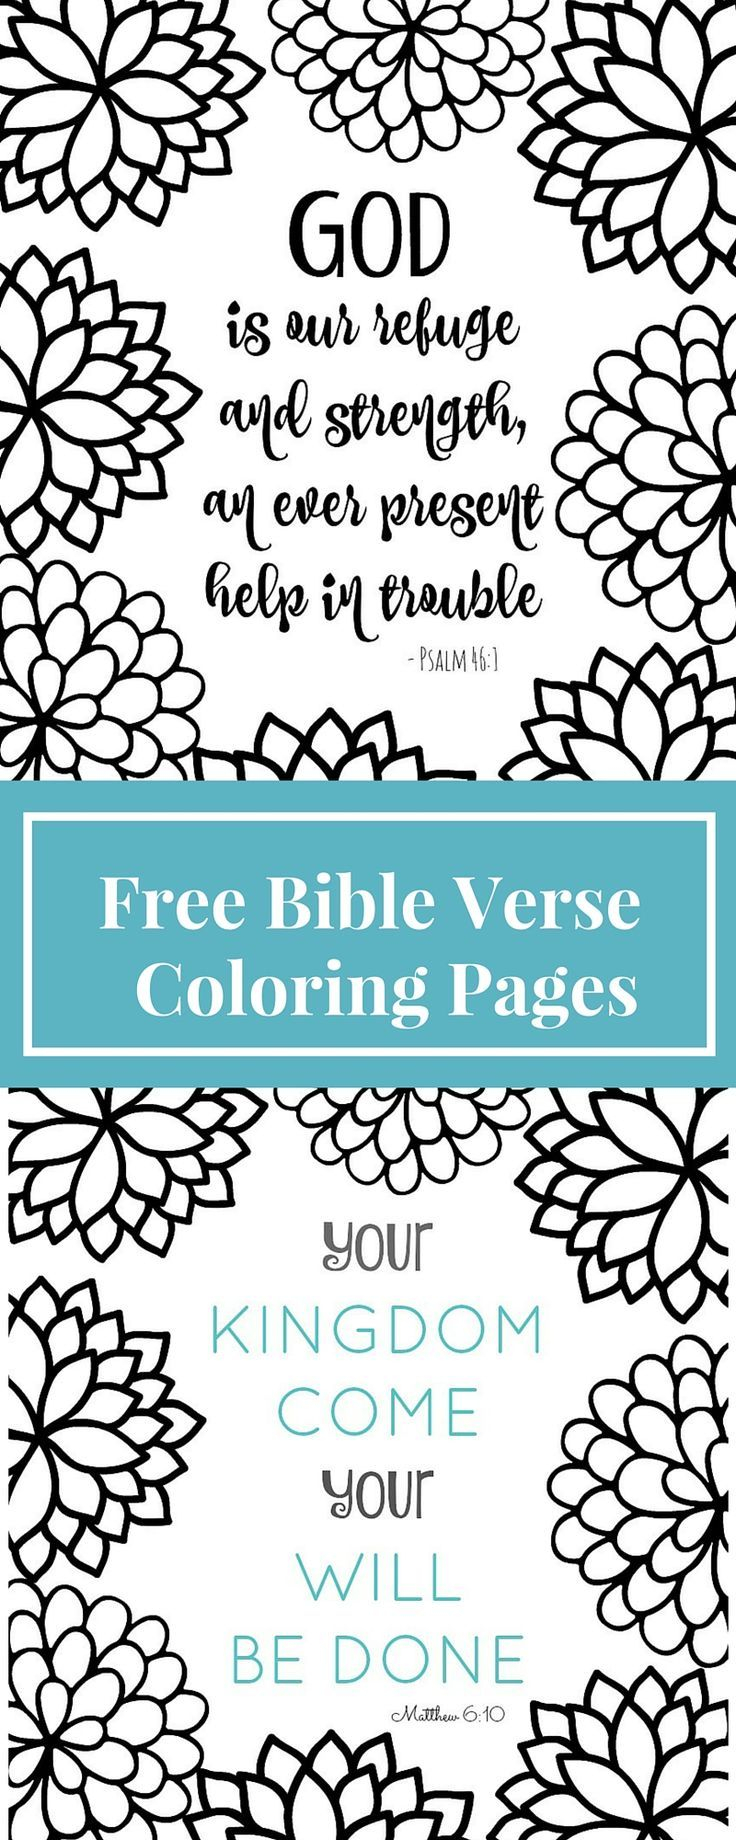 photo regarding Free Printable Bible Verse Coloring Pages referred to as 24 Bible Verses Coloring Webpages Assortment - Coloring Sheets